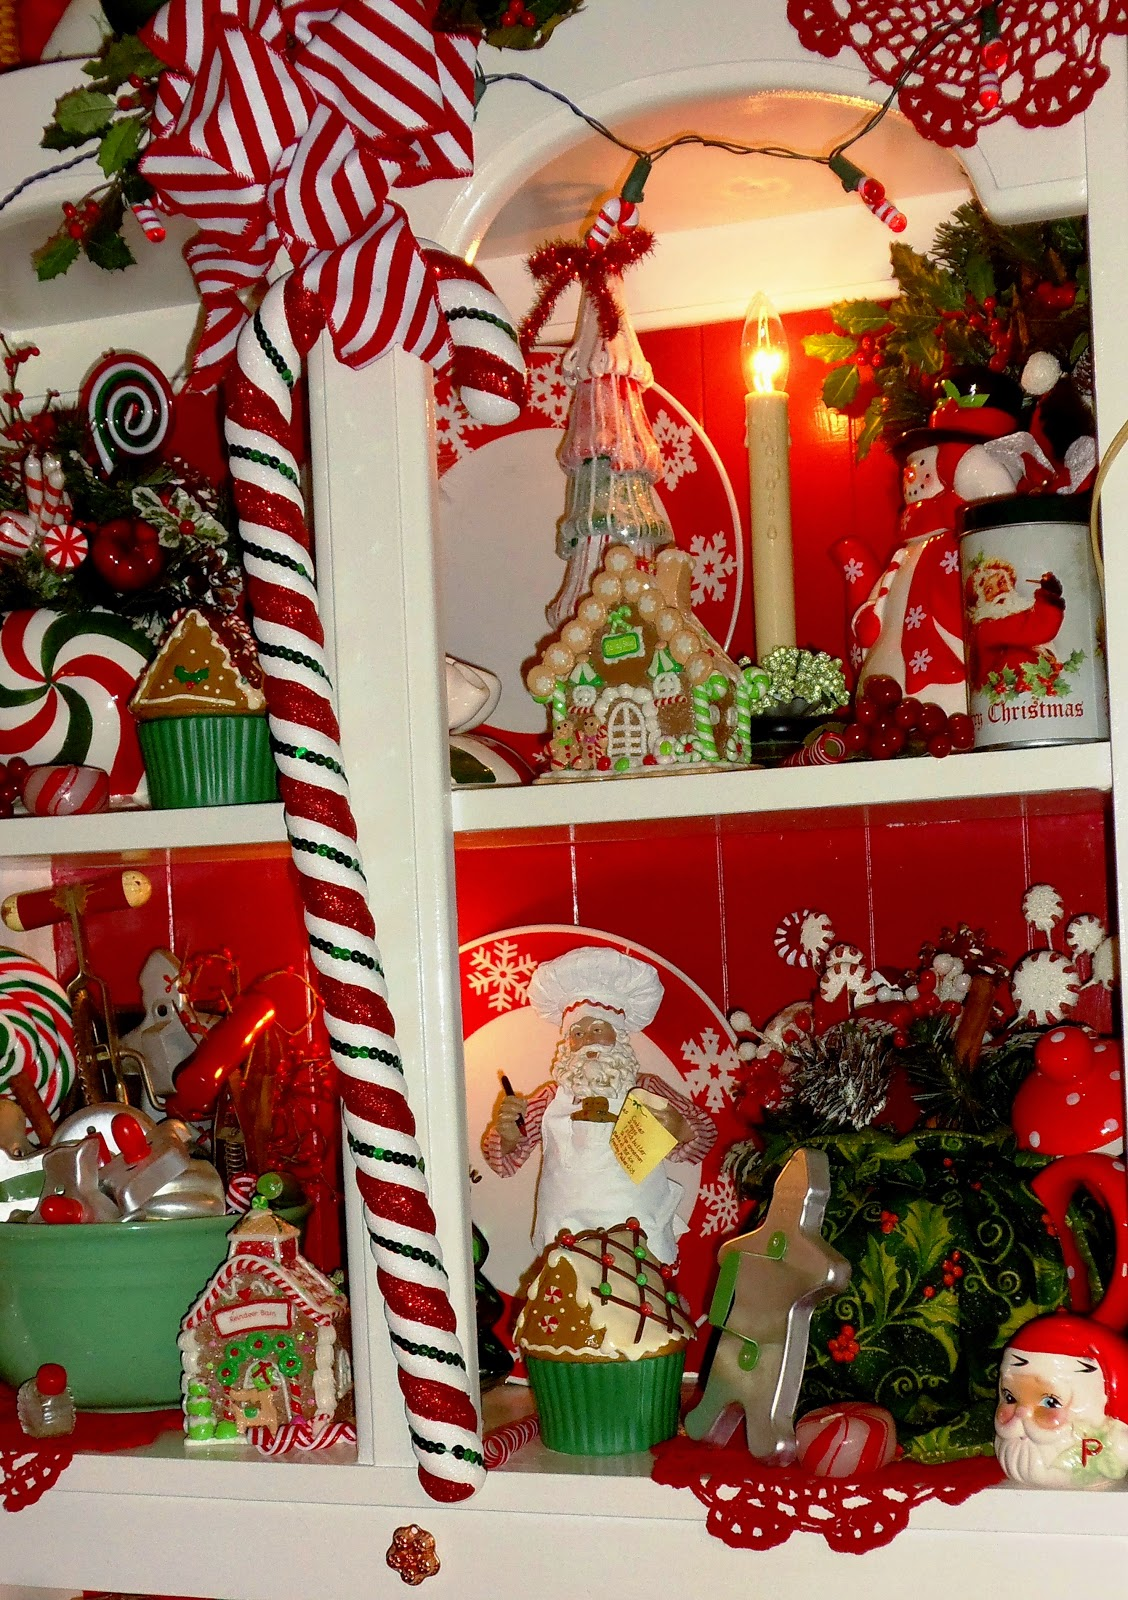 Large candy cane ornaments - Top Shelf